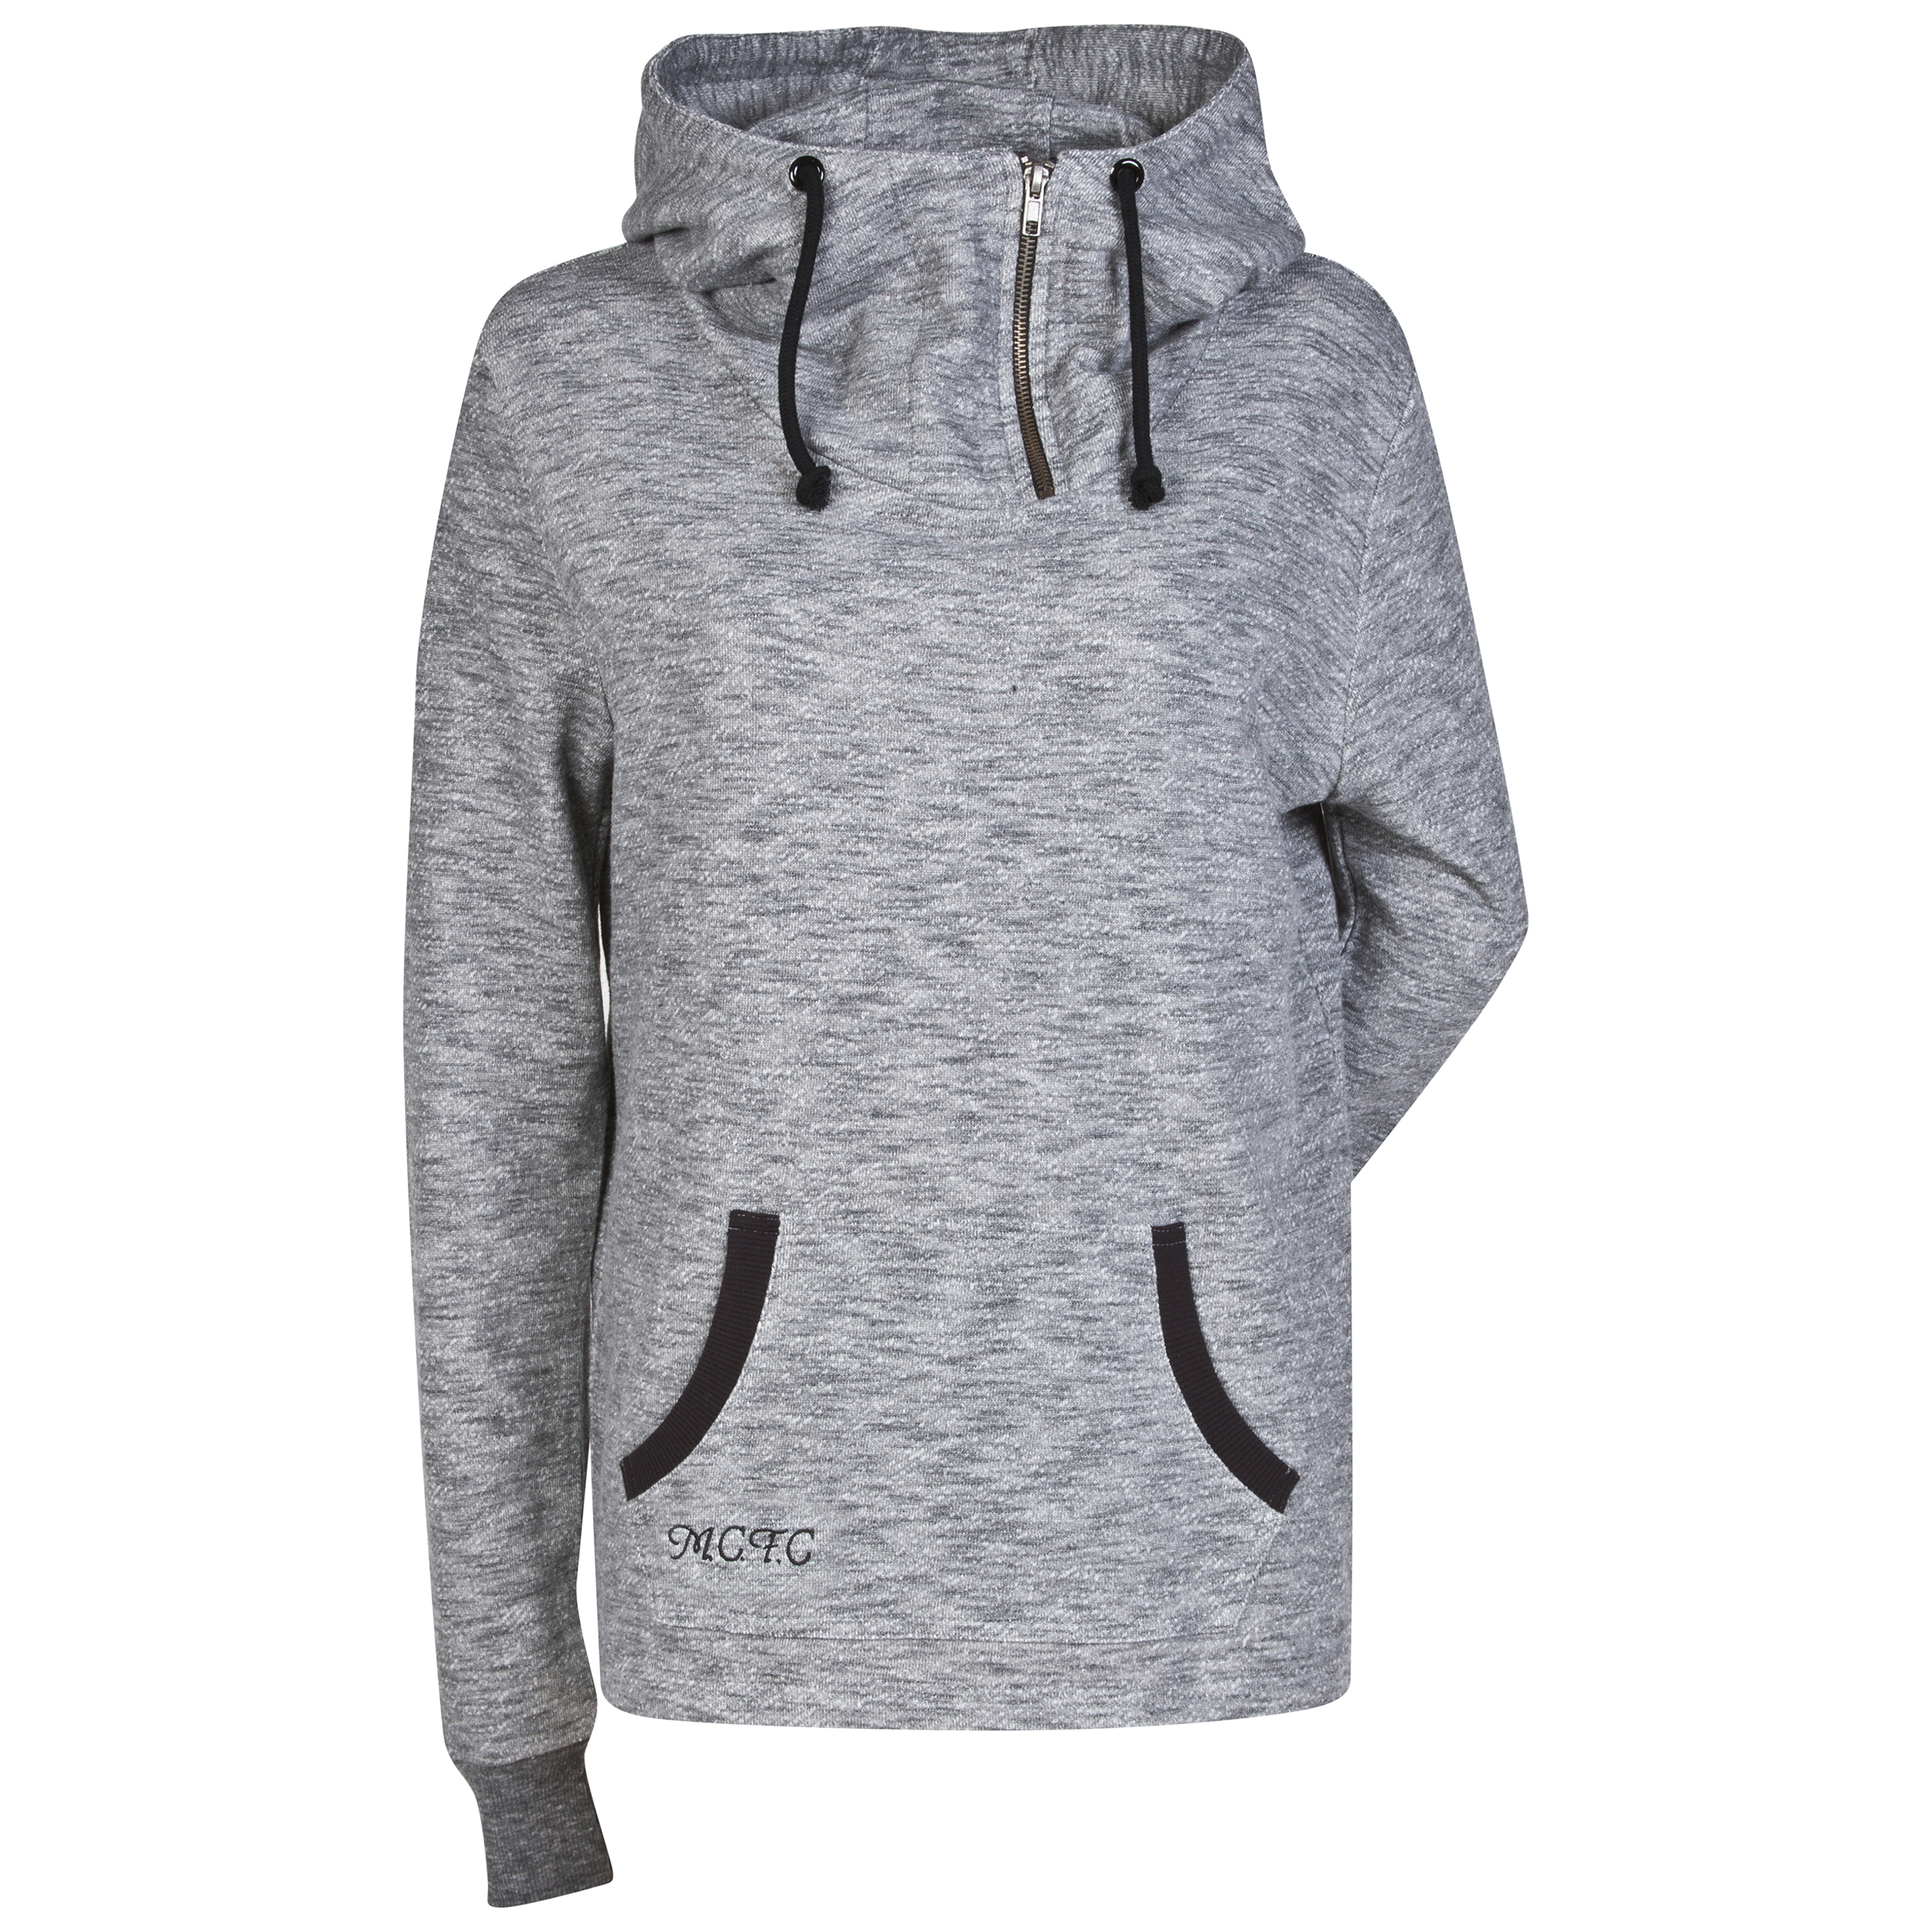 Manchester City Hoodie - Grey Marls - Womens